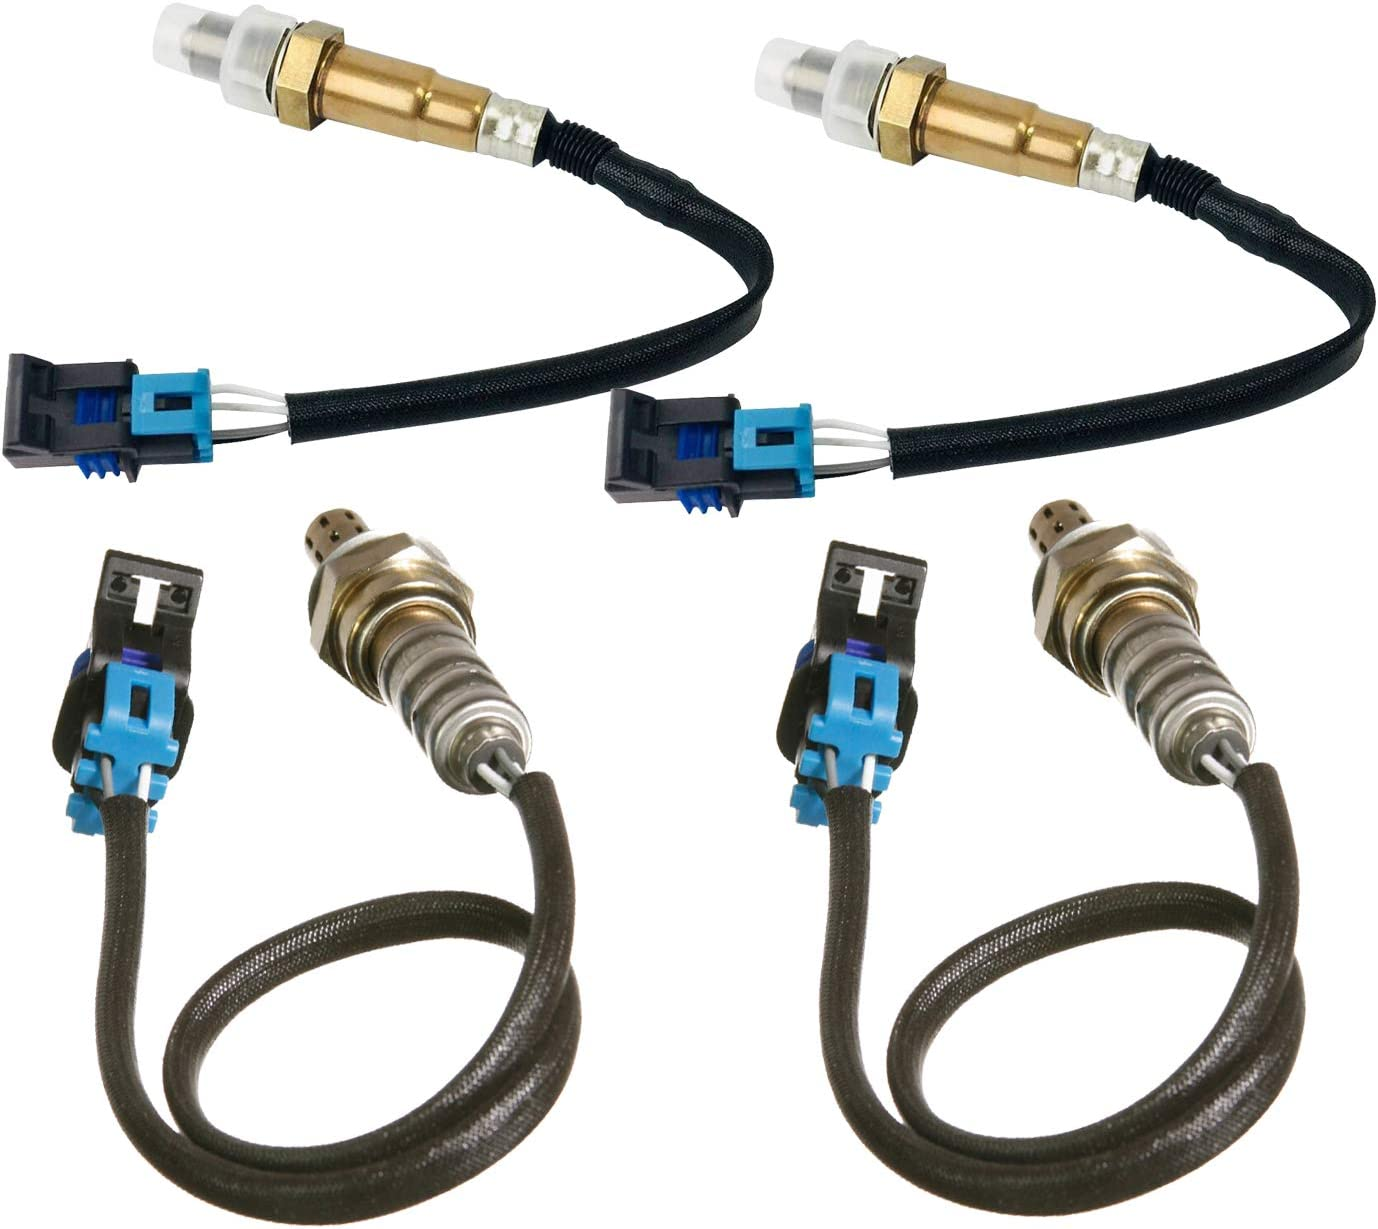 MAXFAVOR 234-4565 Omaha Mall x2 Product 234-4566 O2 Chevy Replacment for Sensor